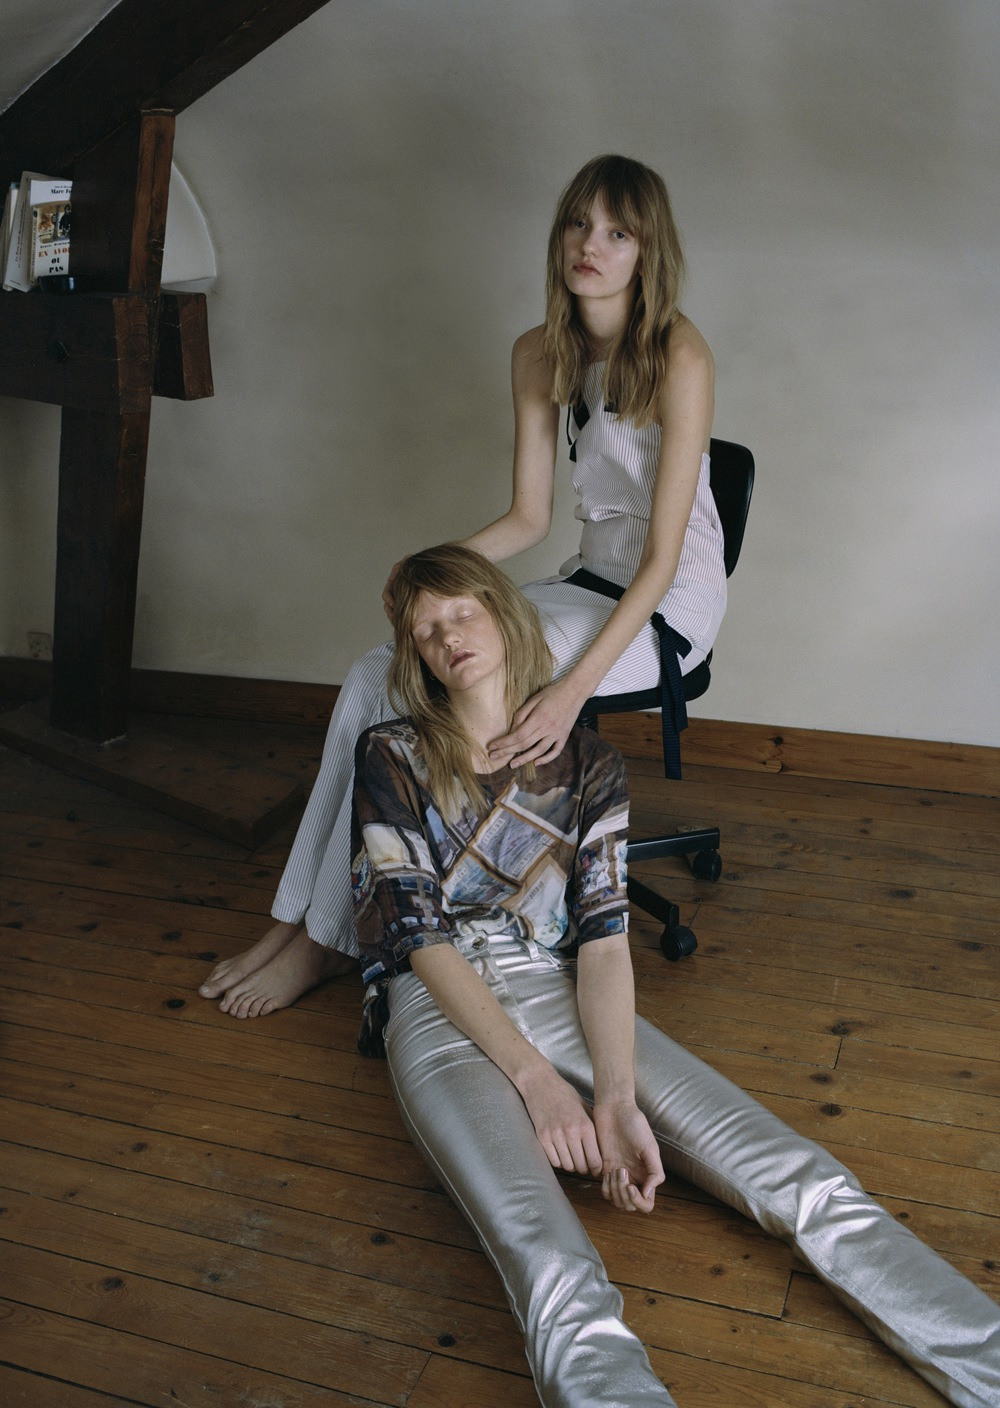 Striped blouse and trousers  JACQUEMUS,  frame print tee  BLESS,  silver denim trousers  PACO RABANNE.